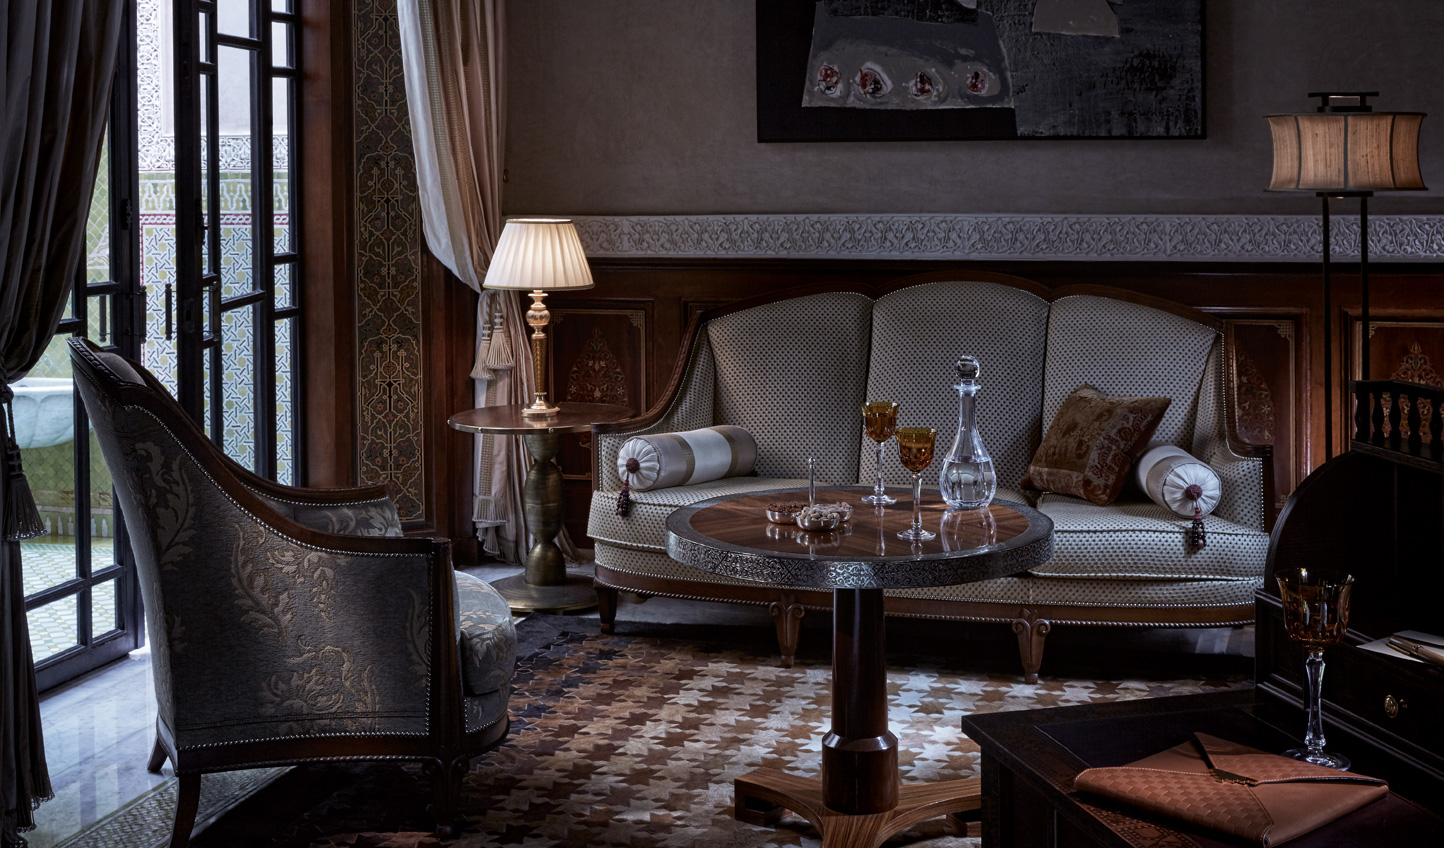 Cosy interiors with traditional Moroccan touches